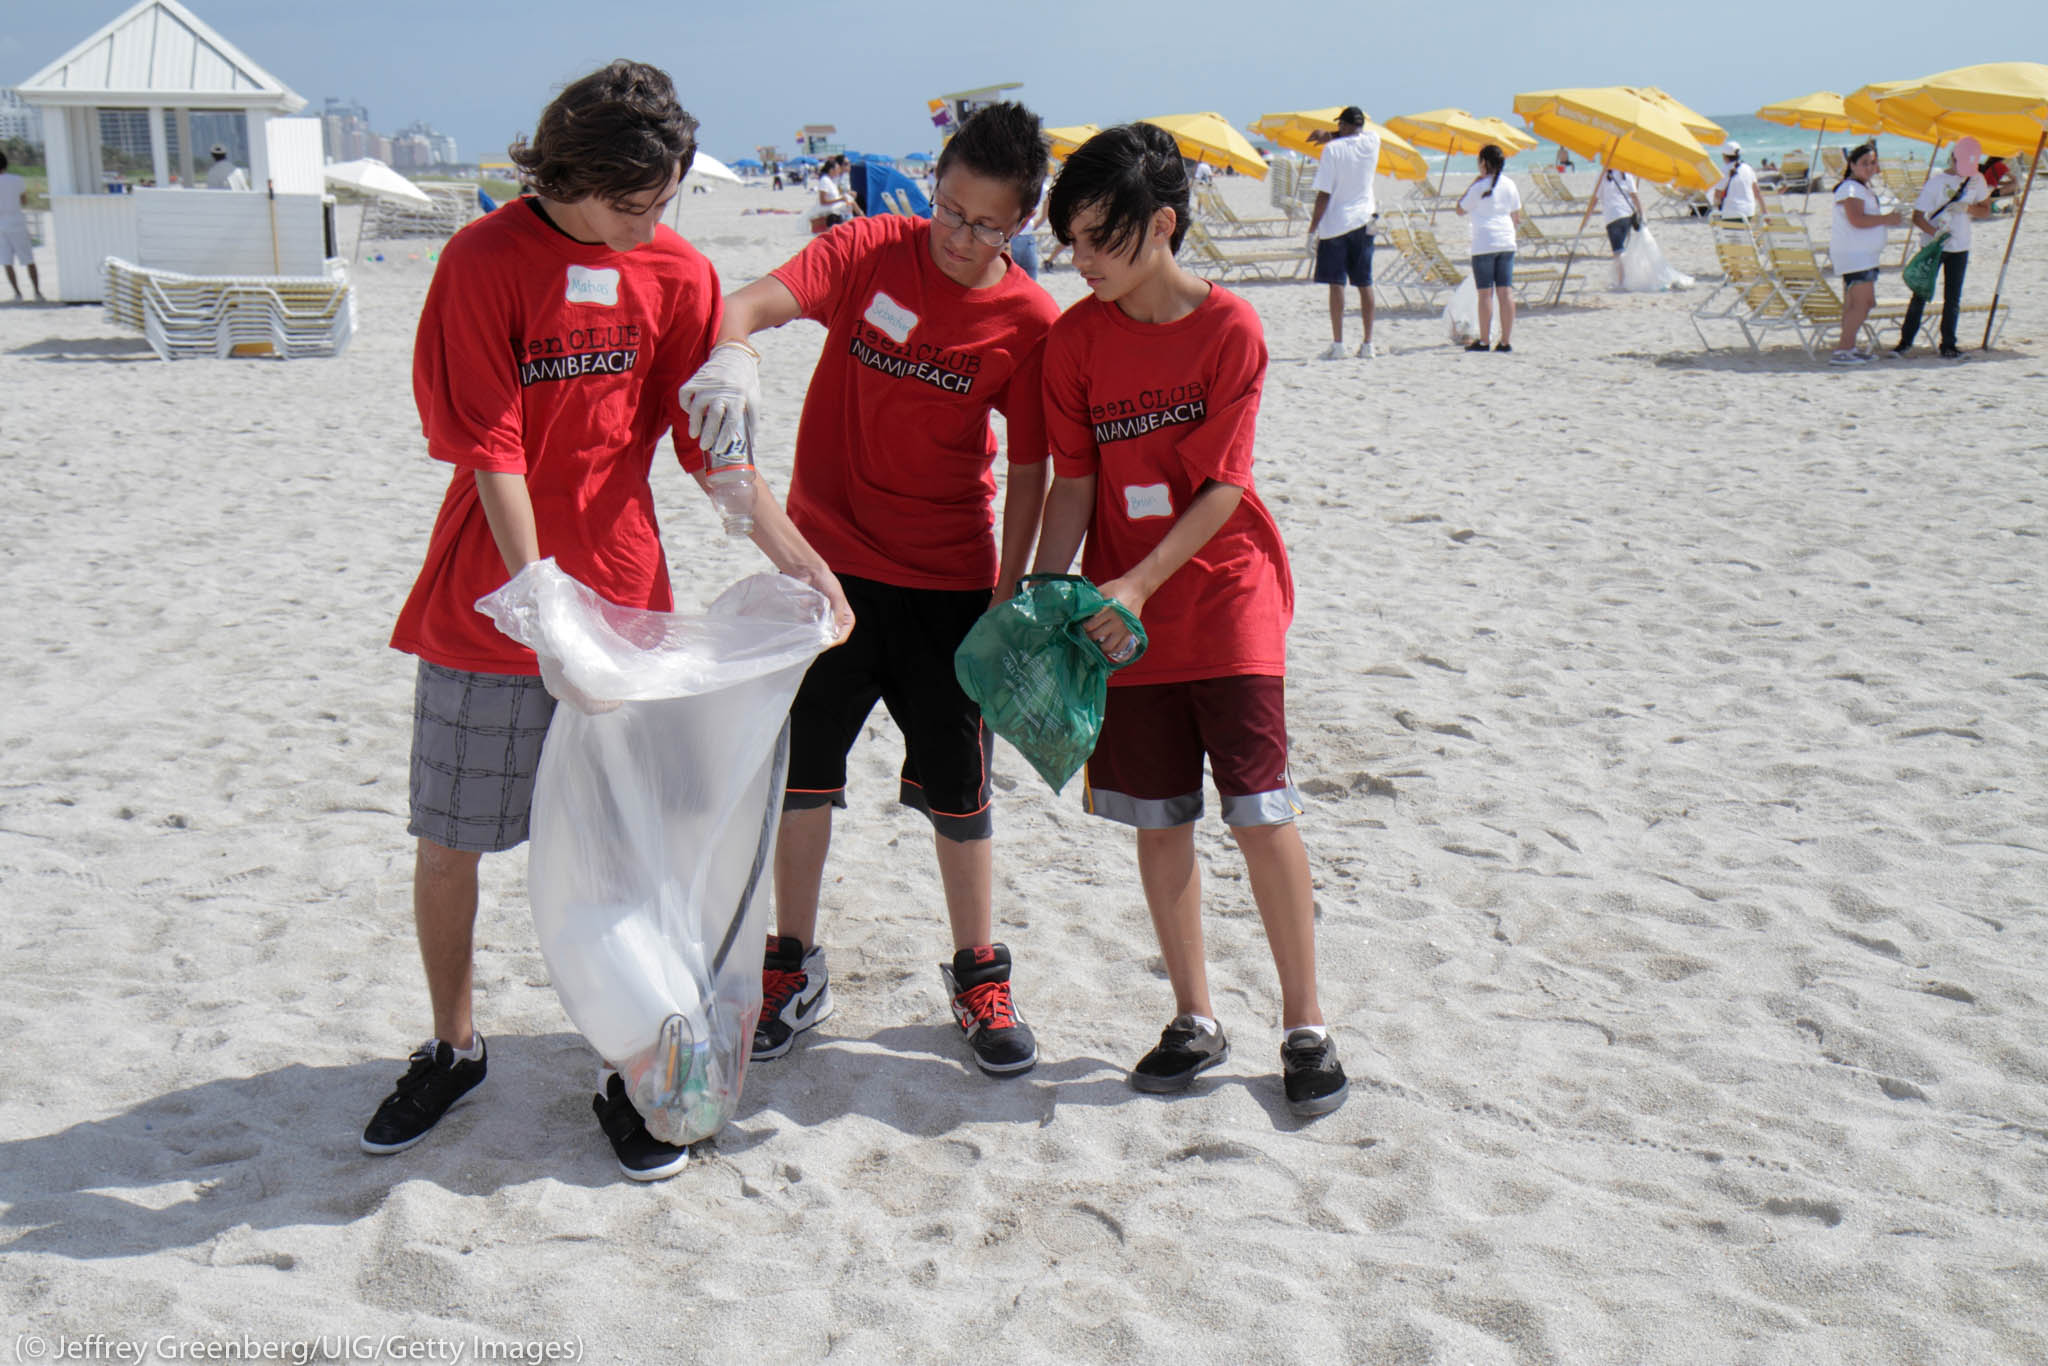 Young people collecting trash on beach (©Jeffrey Greenberg/UIG/Getty Images)